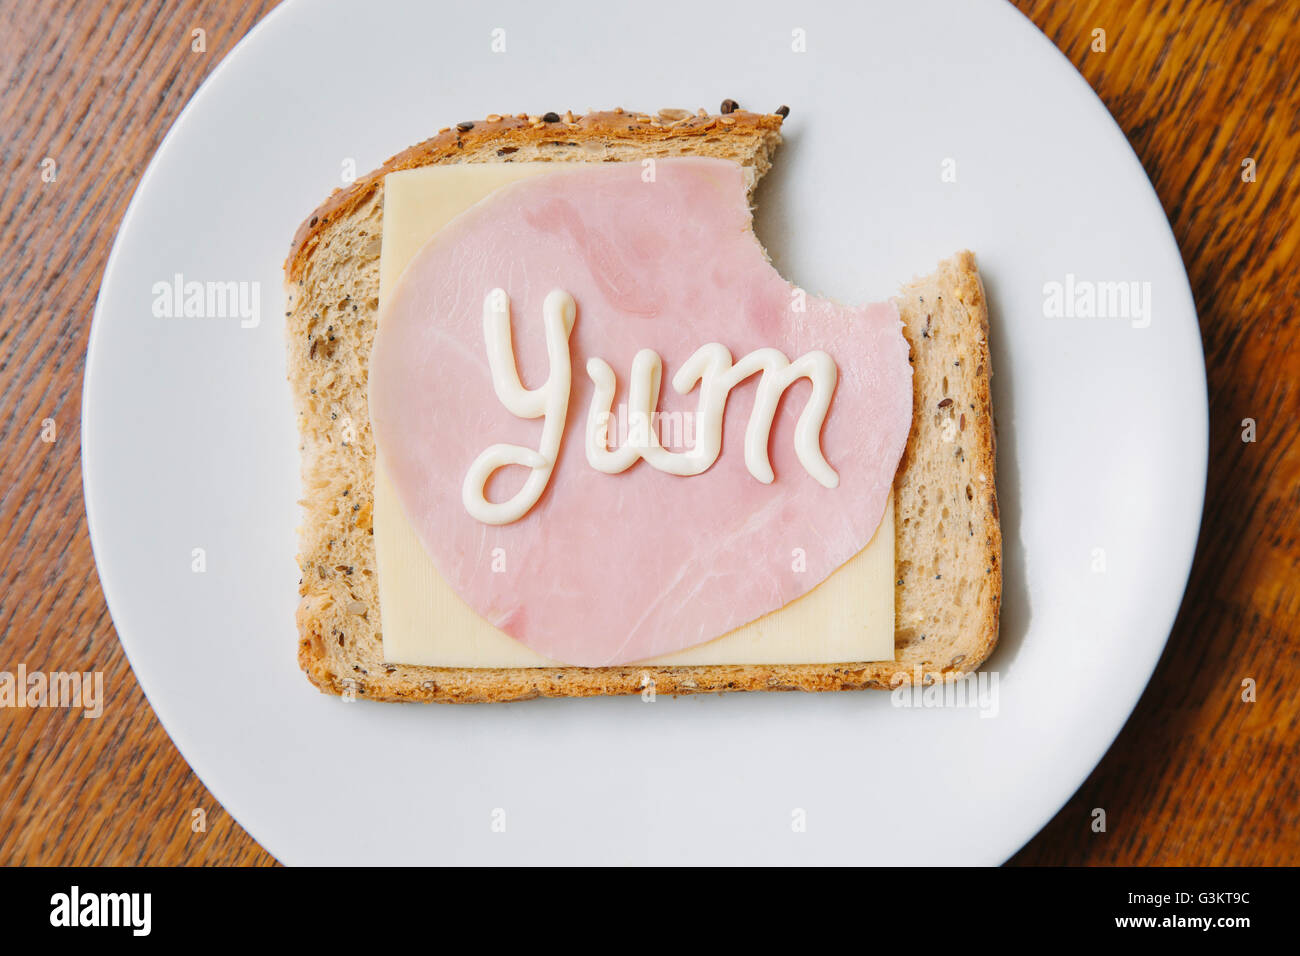 Overhead view of the word yum written on ham and cheese   on bread in mayonnaise - Stock Image